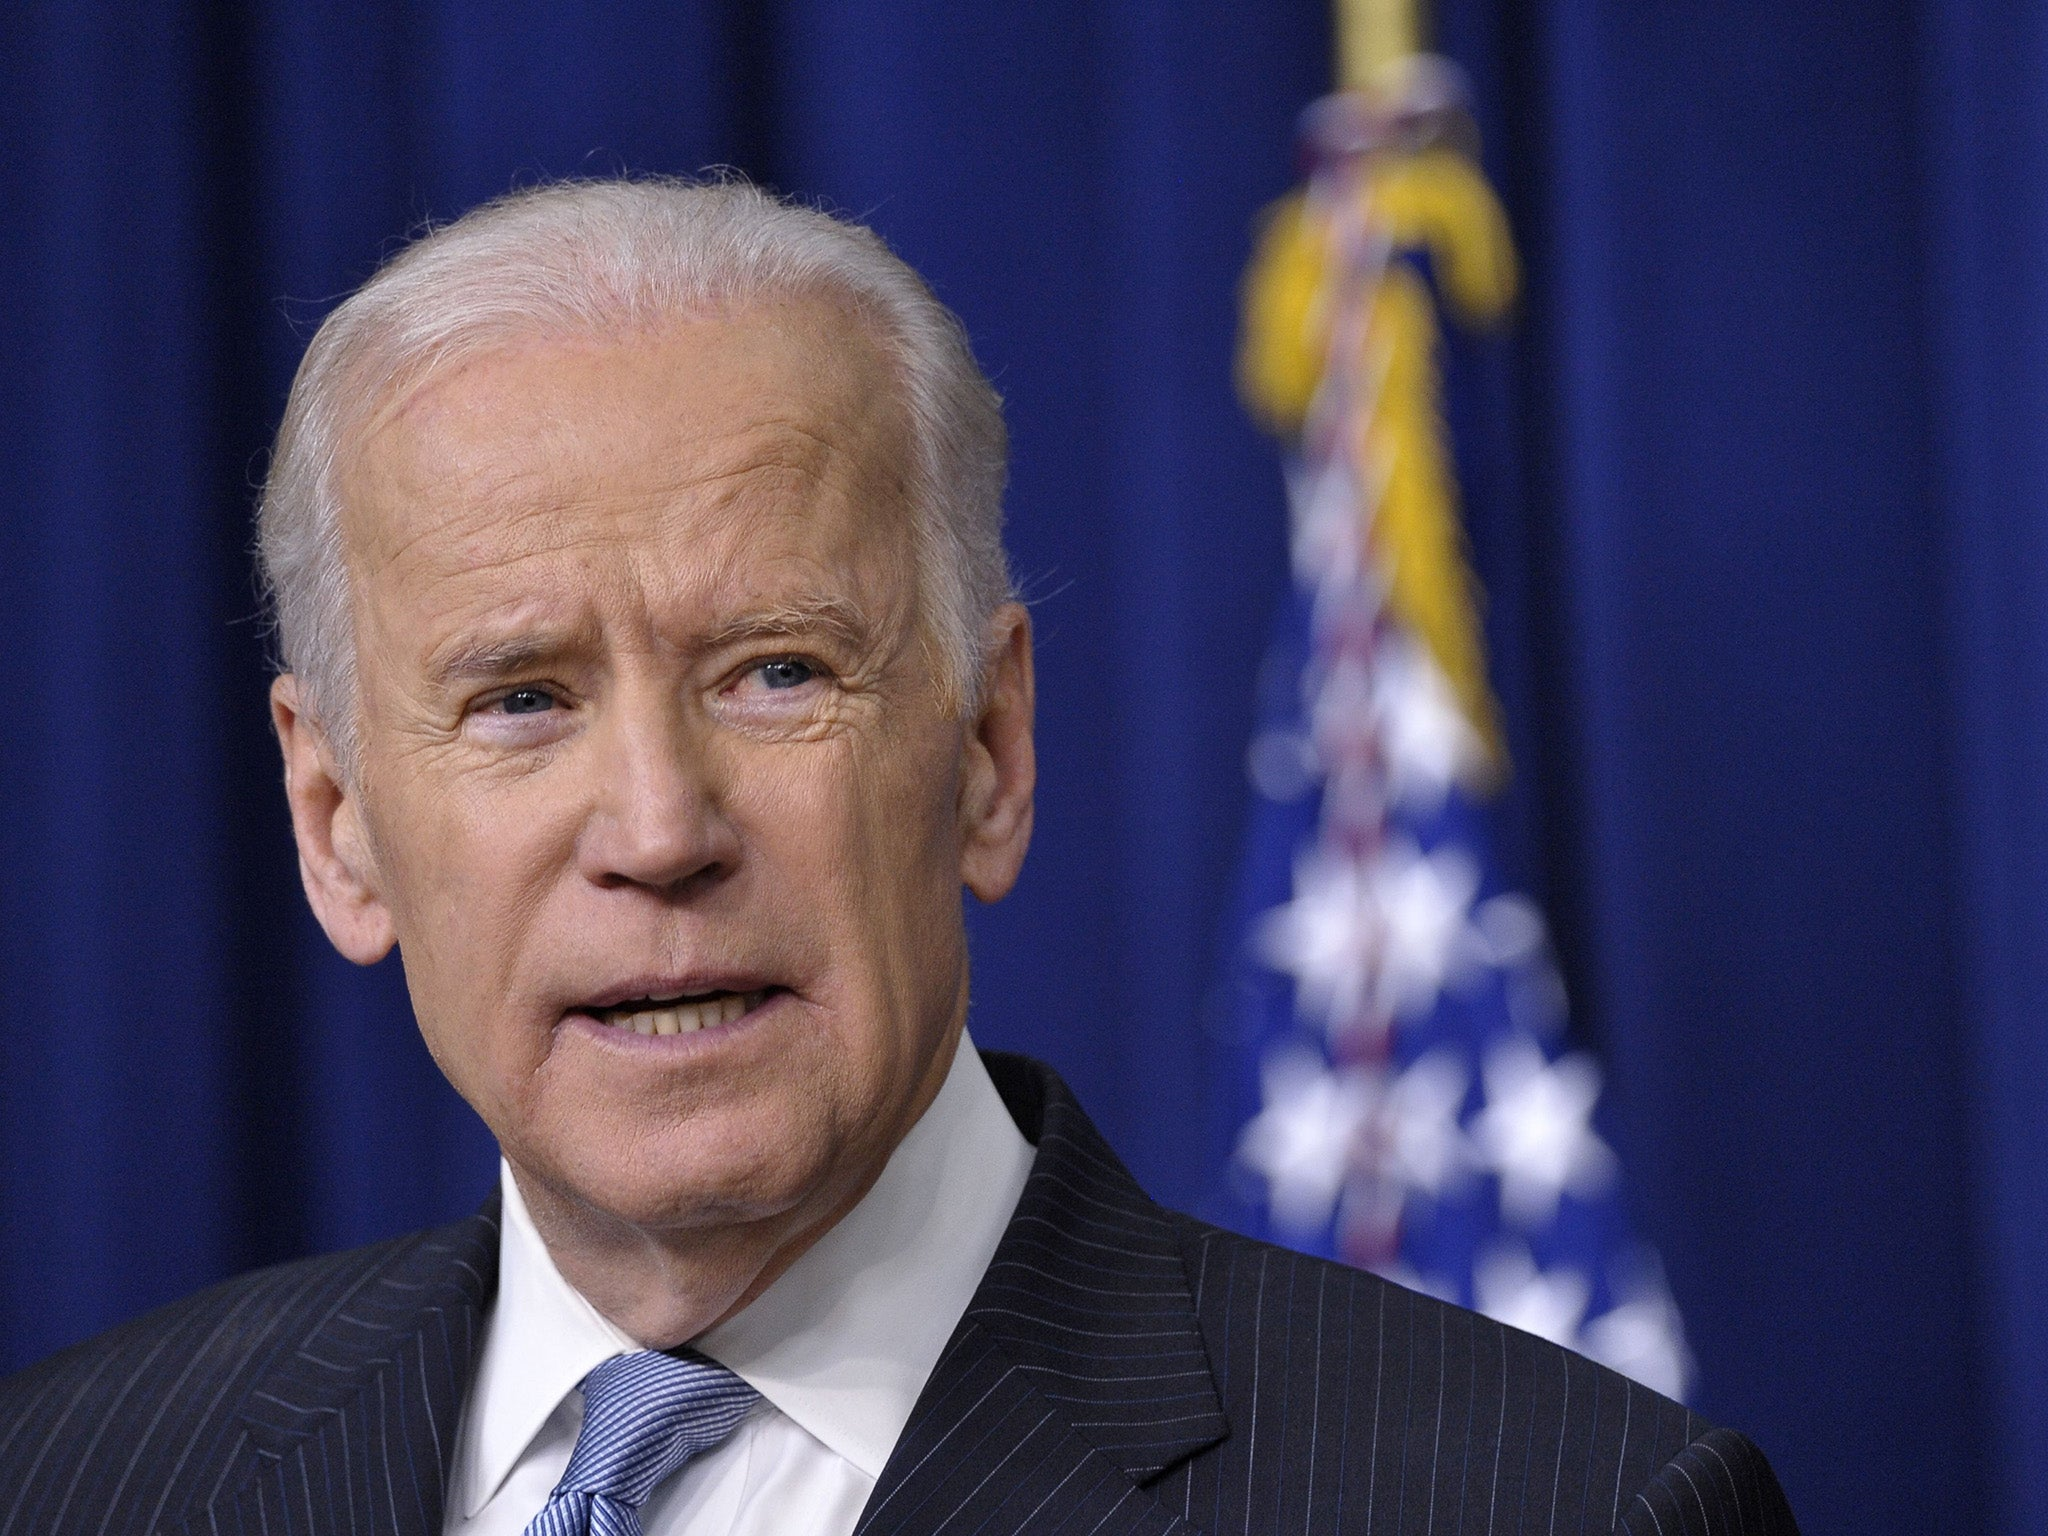 Joe Biden says he 'regrets' supporting 'tough-on-crime' drug laws in 1990s as he considers presidential bid | The Independent | The Independent